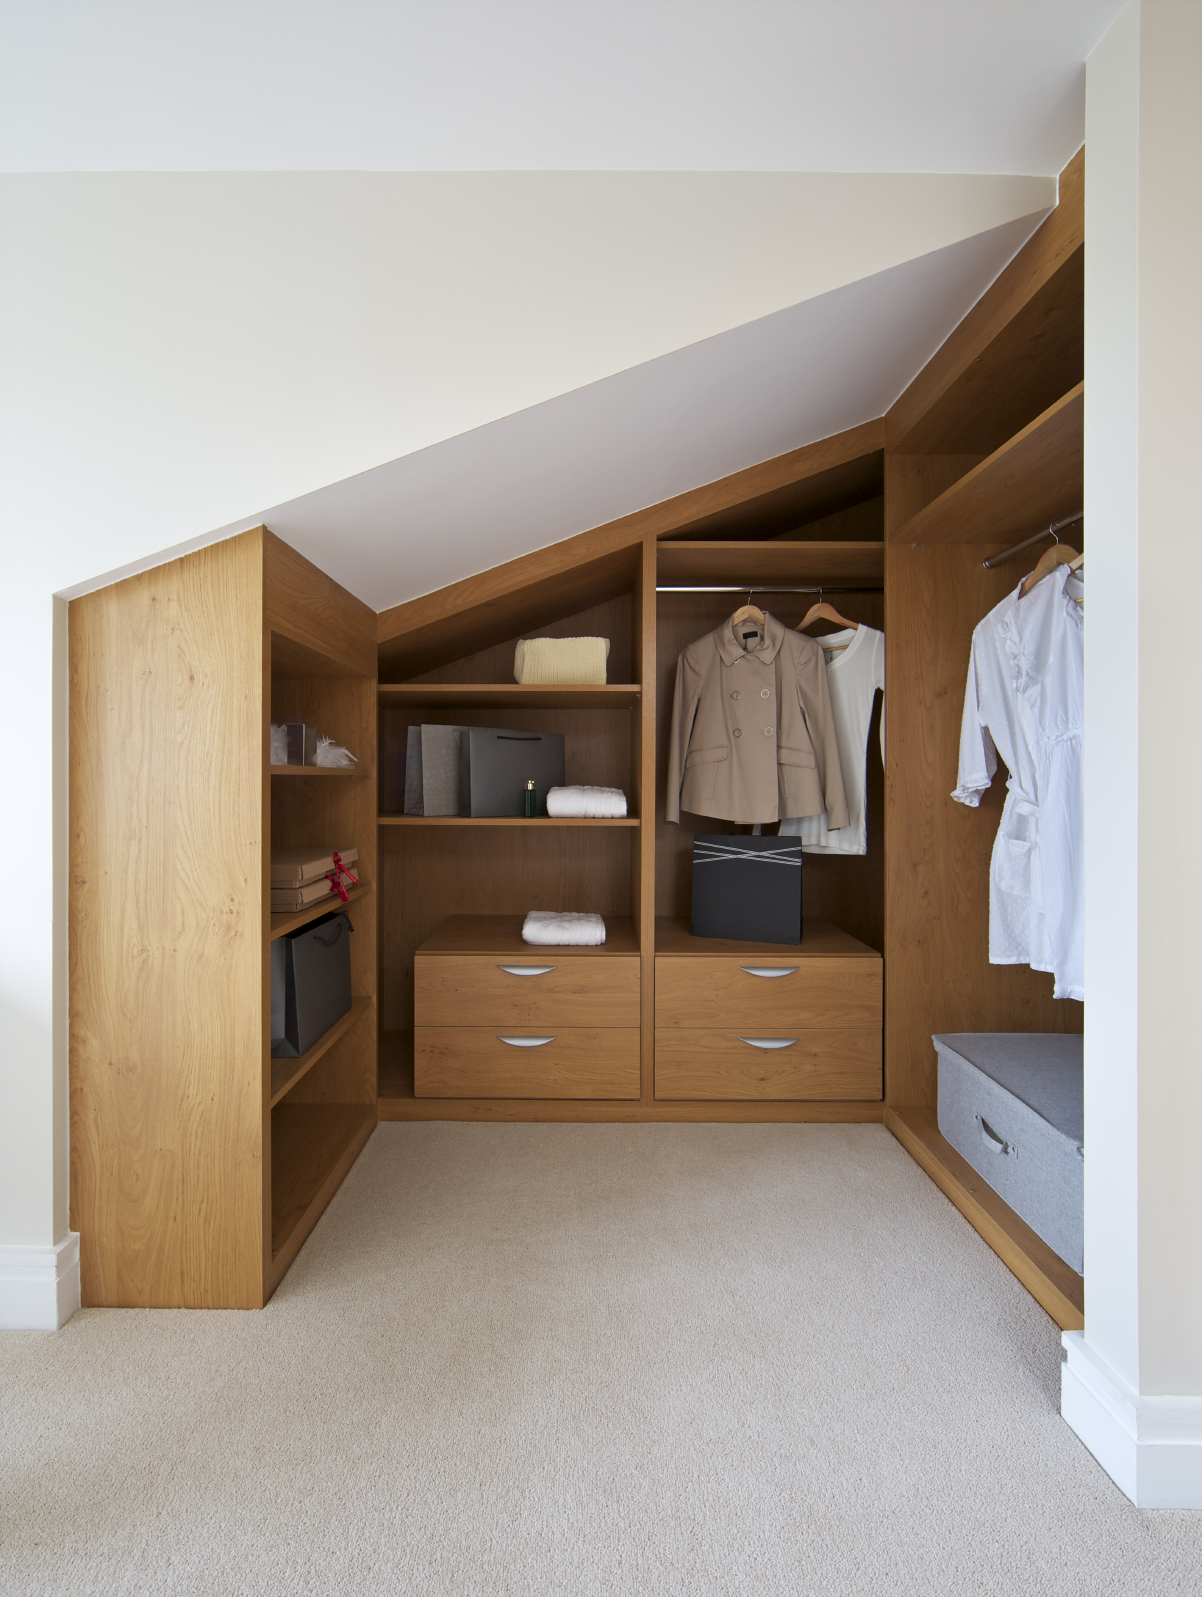 This Closet Is On The Smaller End Tucked Into A Nook Of A Bedroom